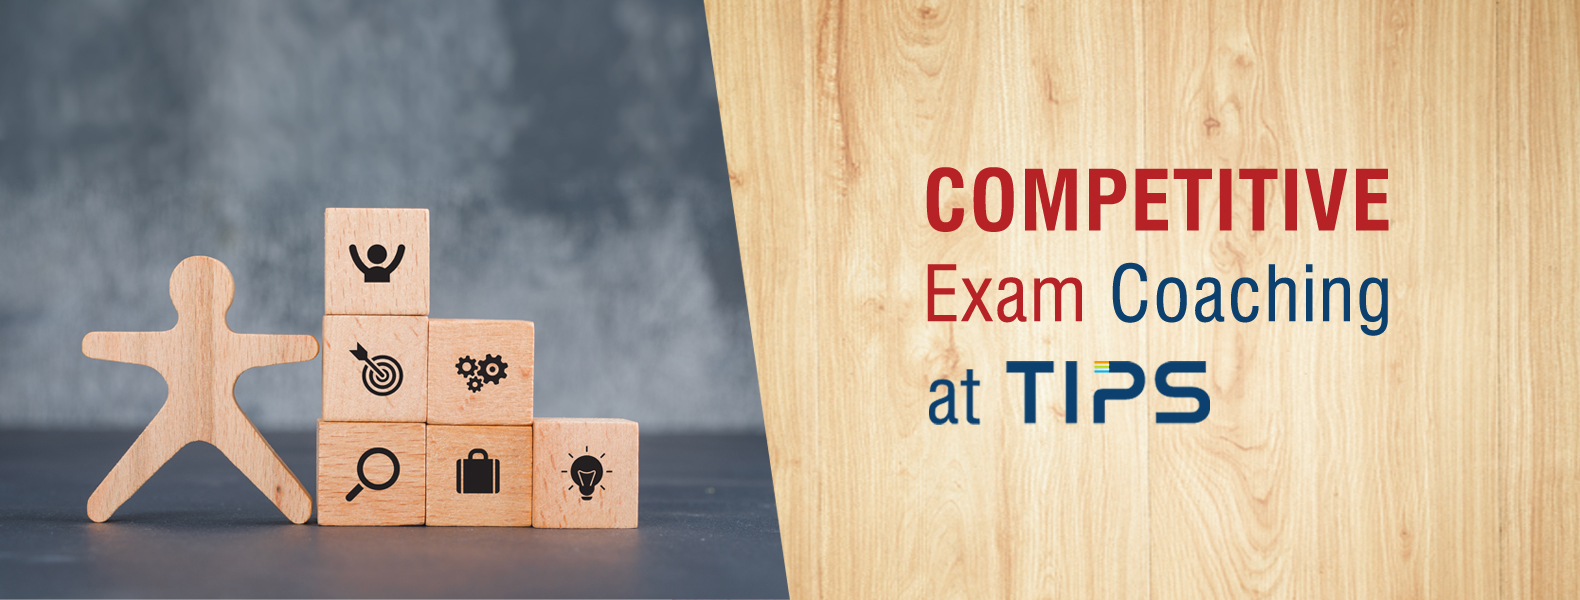 competitive exam coaching at TIPS